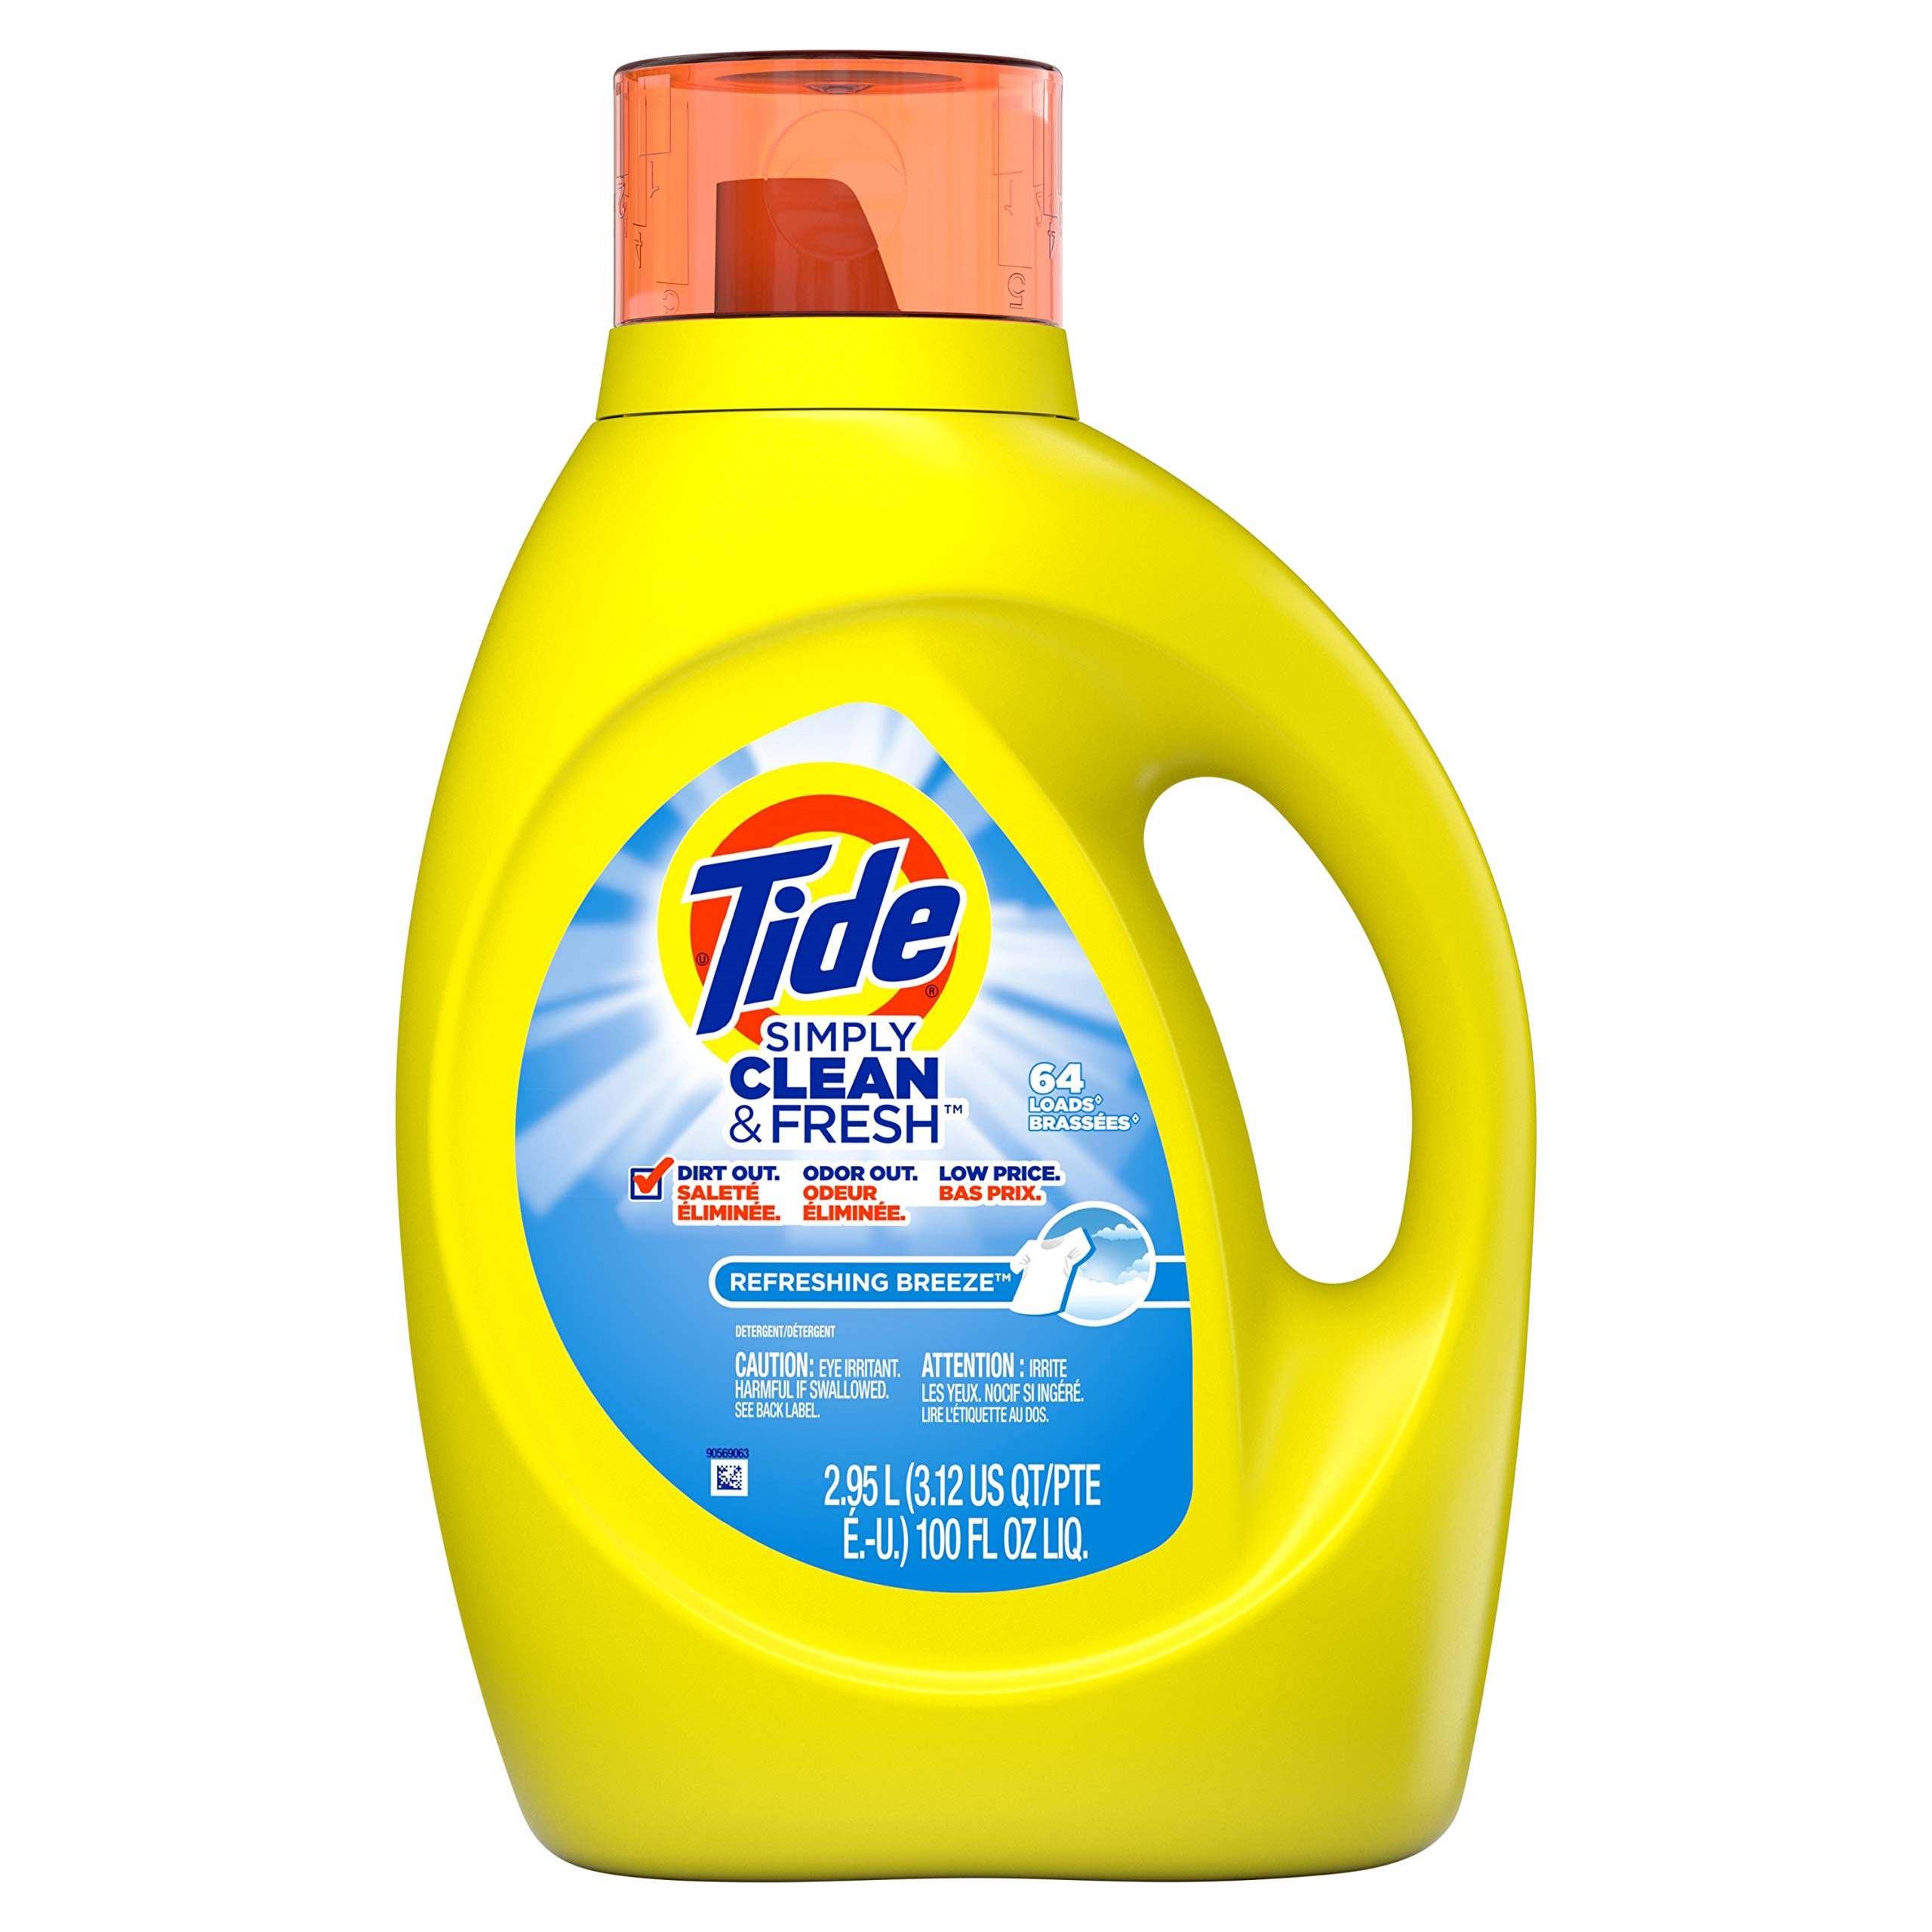 Tide 89129 Simply Clean & Fresh Laundry Detergent, Refreshing Breeze, 100oz Bottle (Case of 4)